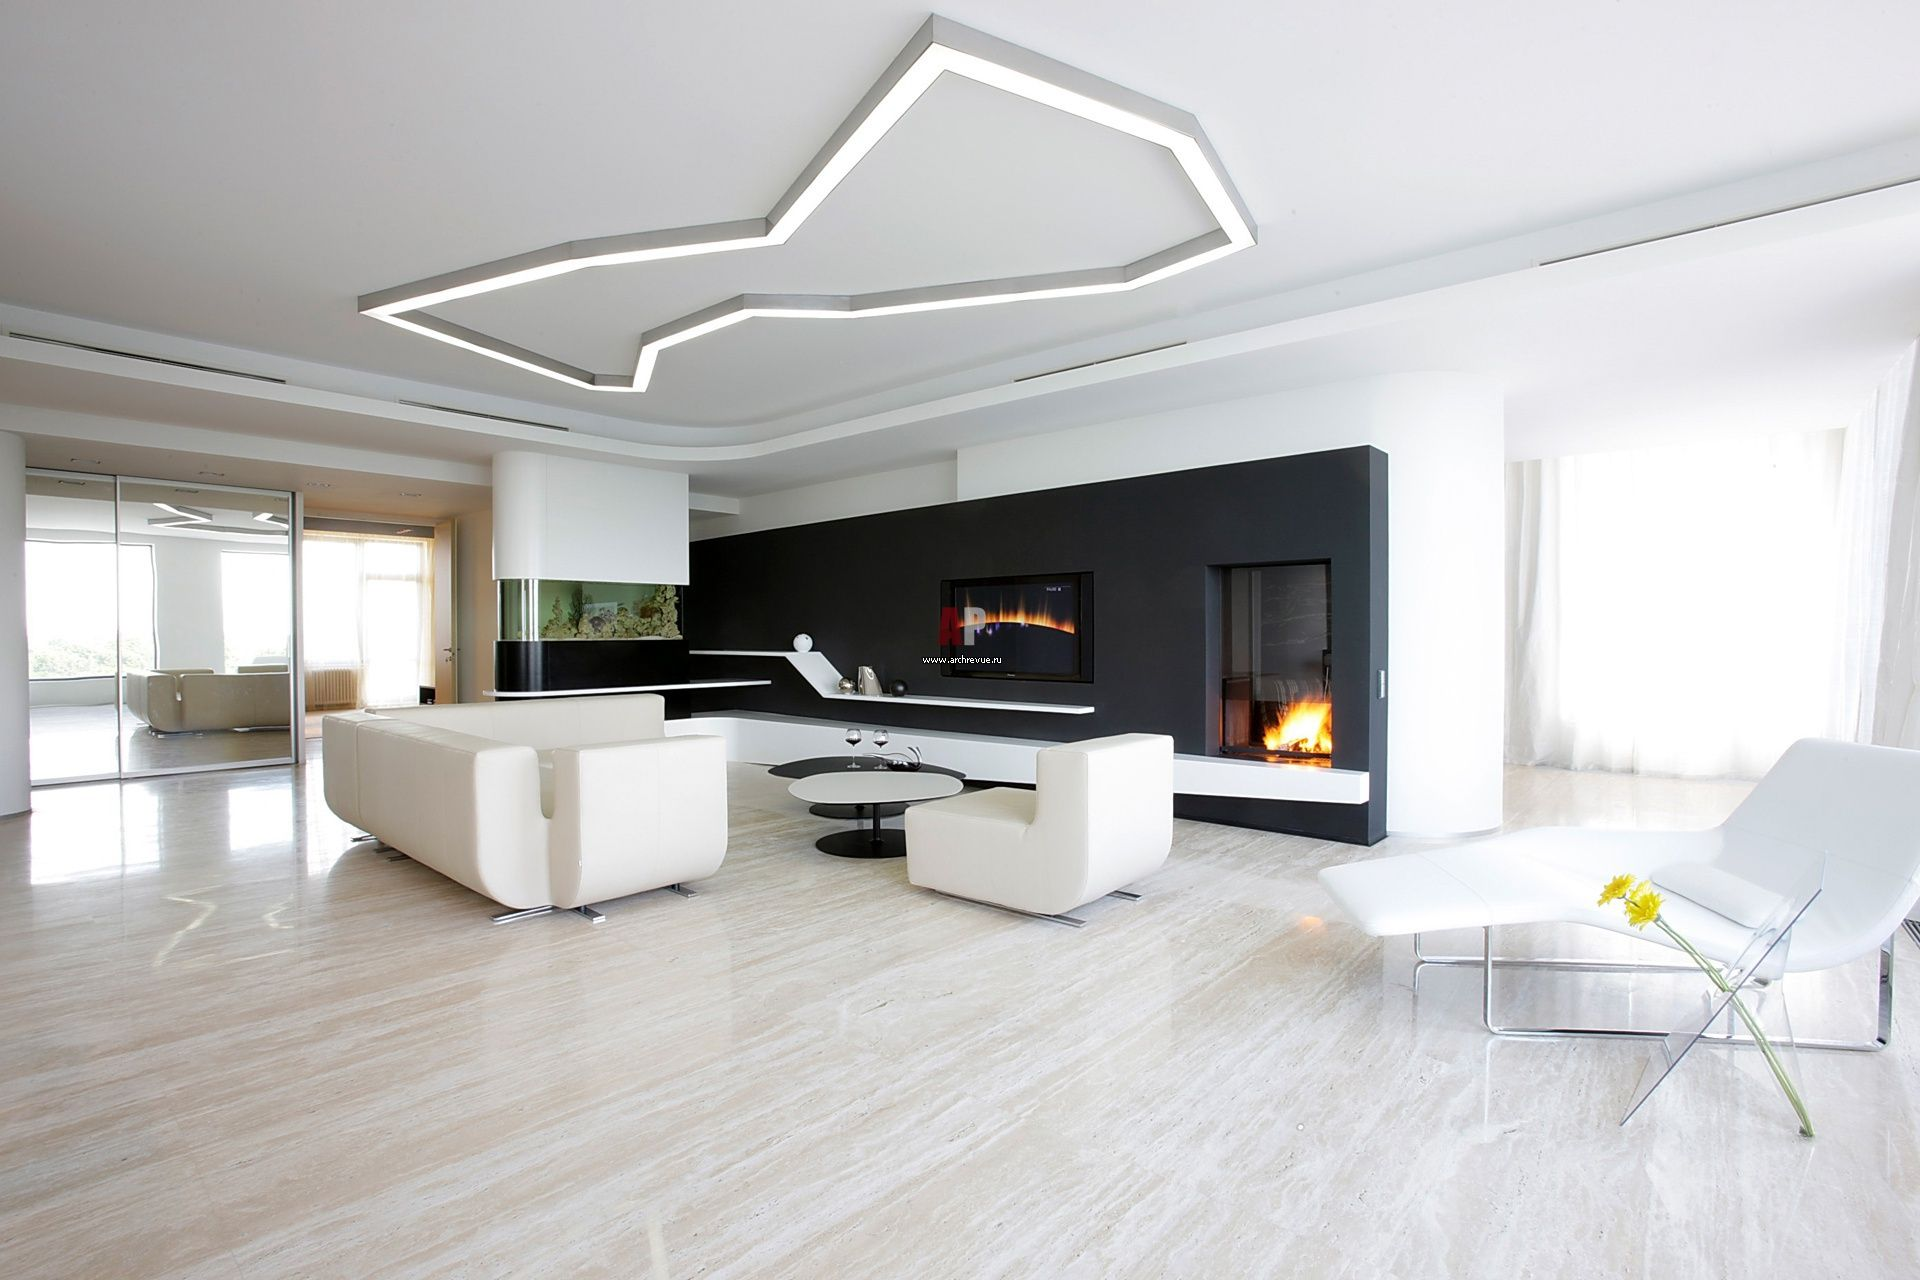 Minimalism interior design style in the living room with fireplace contrasting black wall and unusual